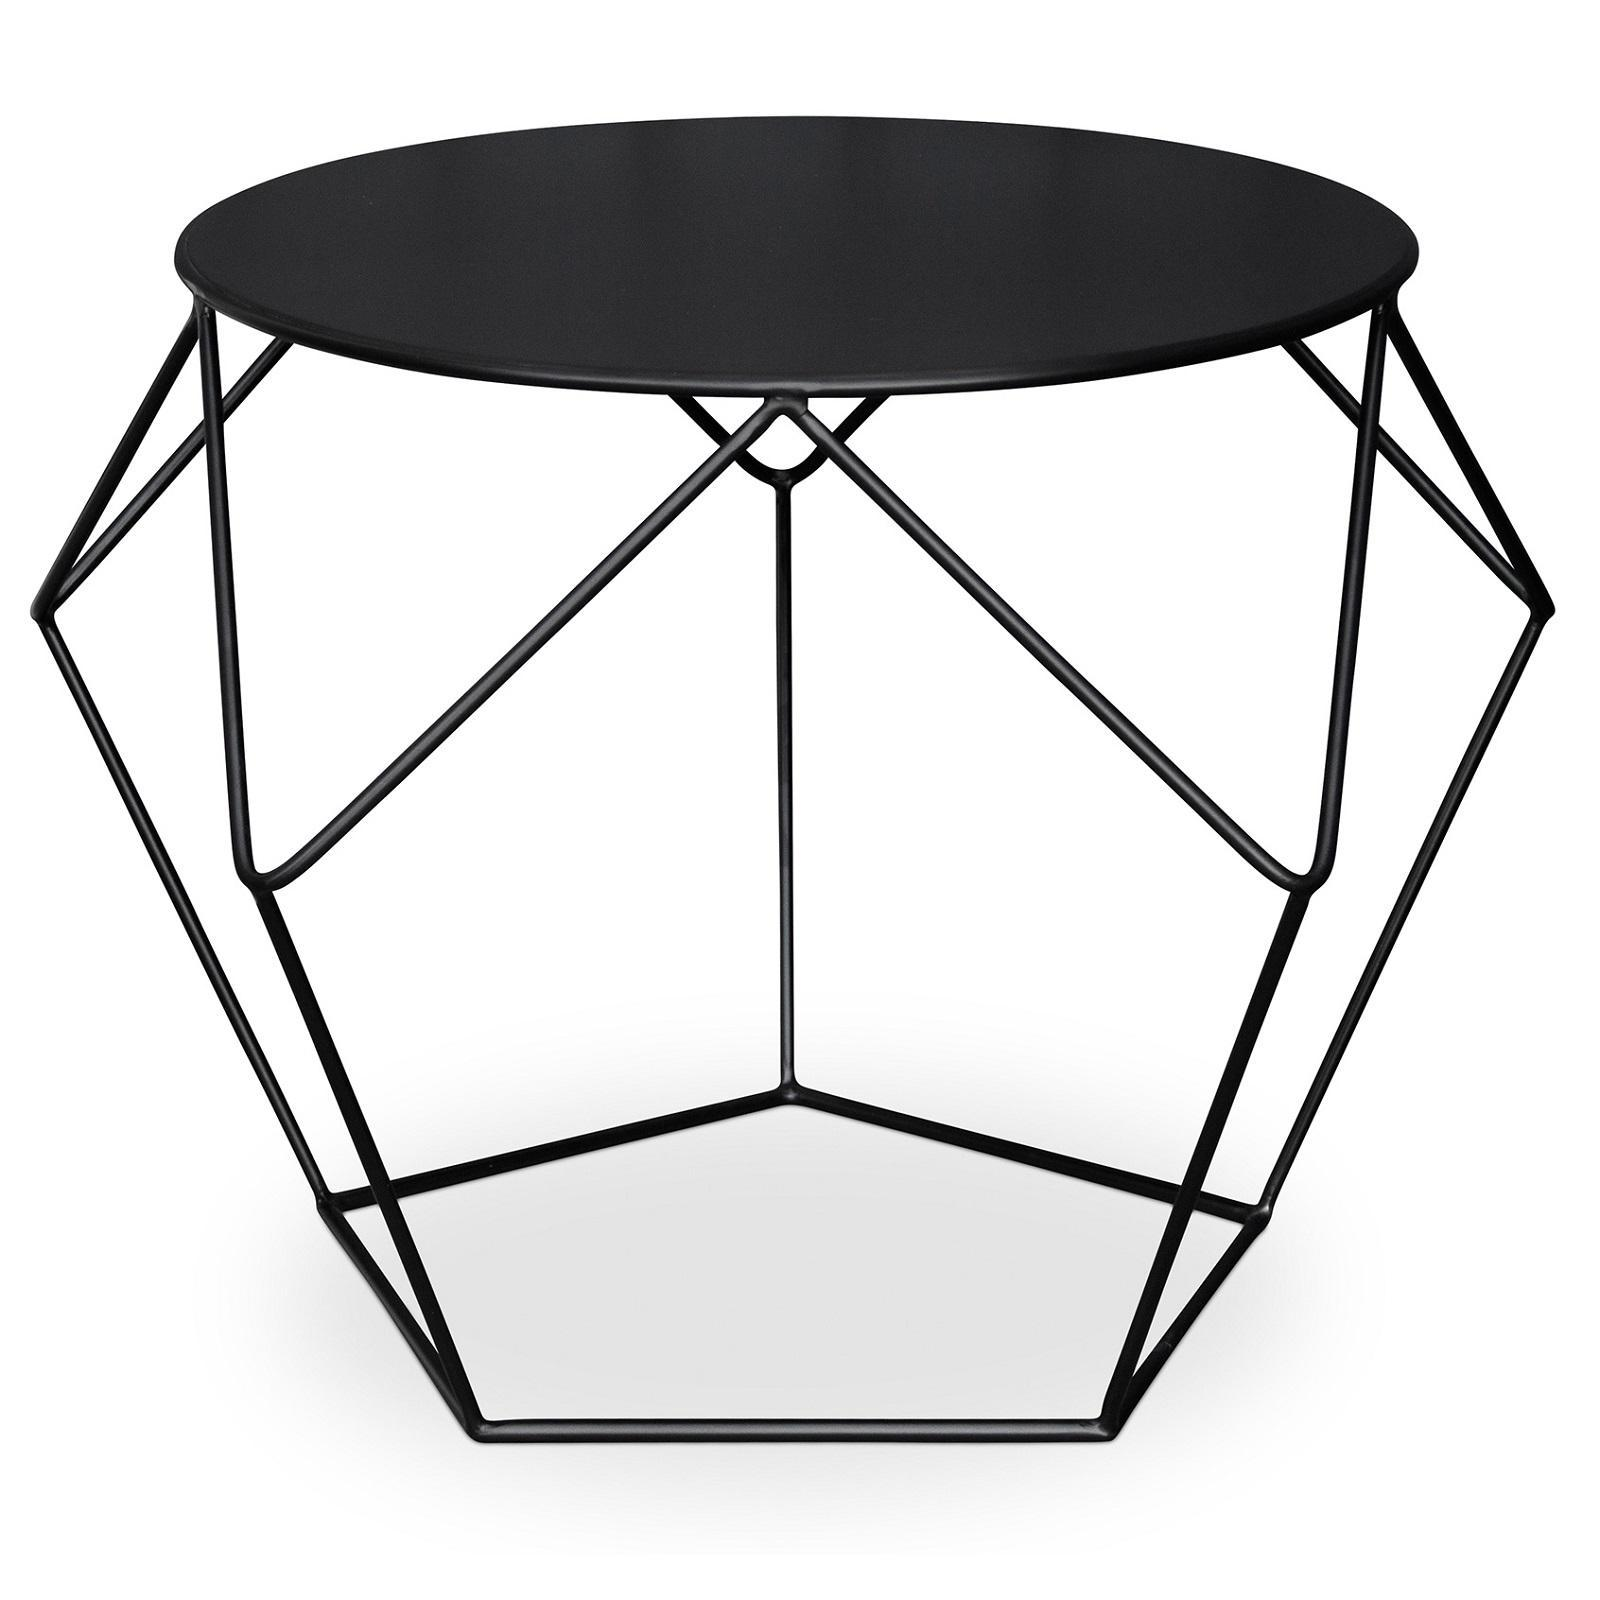 Table D'appoint Pliante Castorama Table D 39appoint Métal Noir Diamant Lestendances Fr